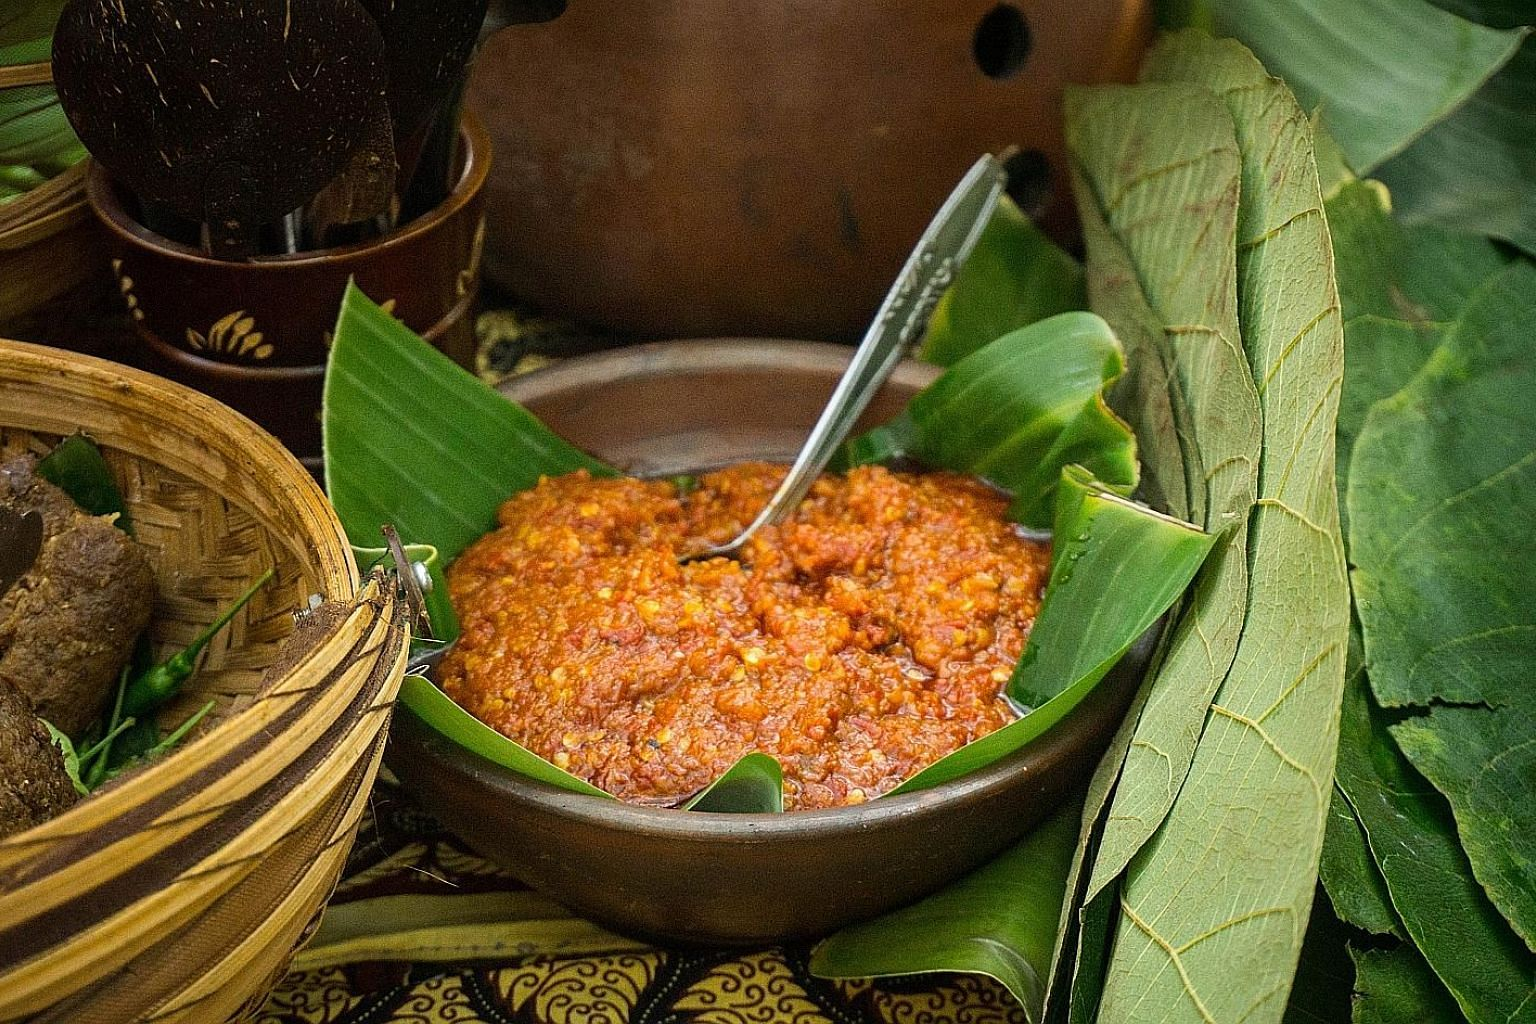 A good sambal can liven up practically any kind of food.